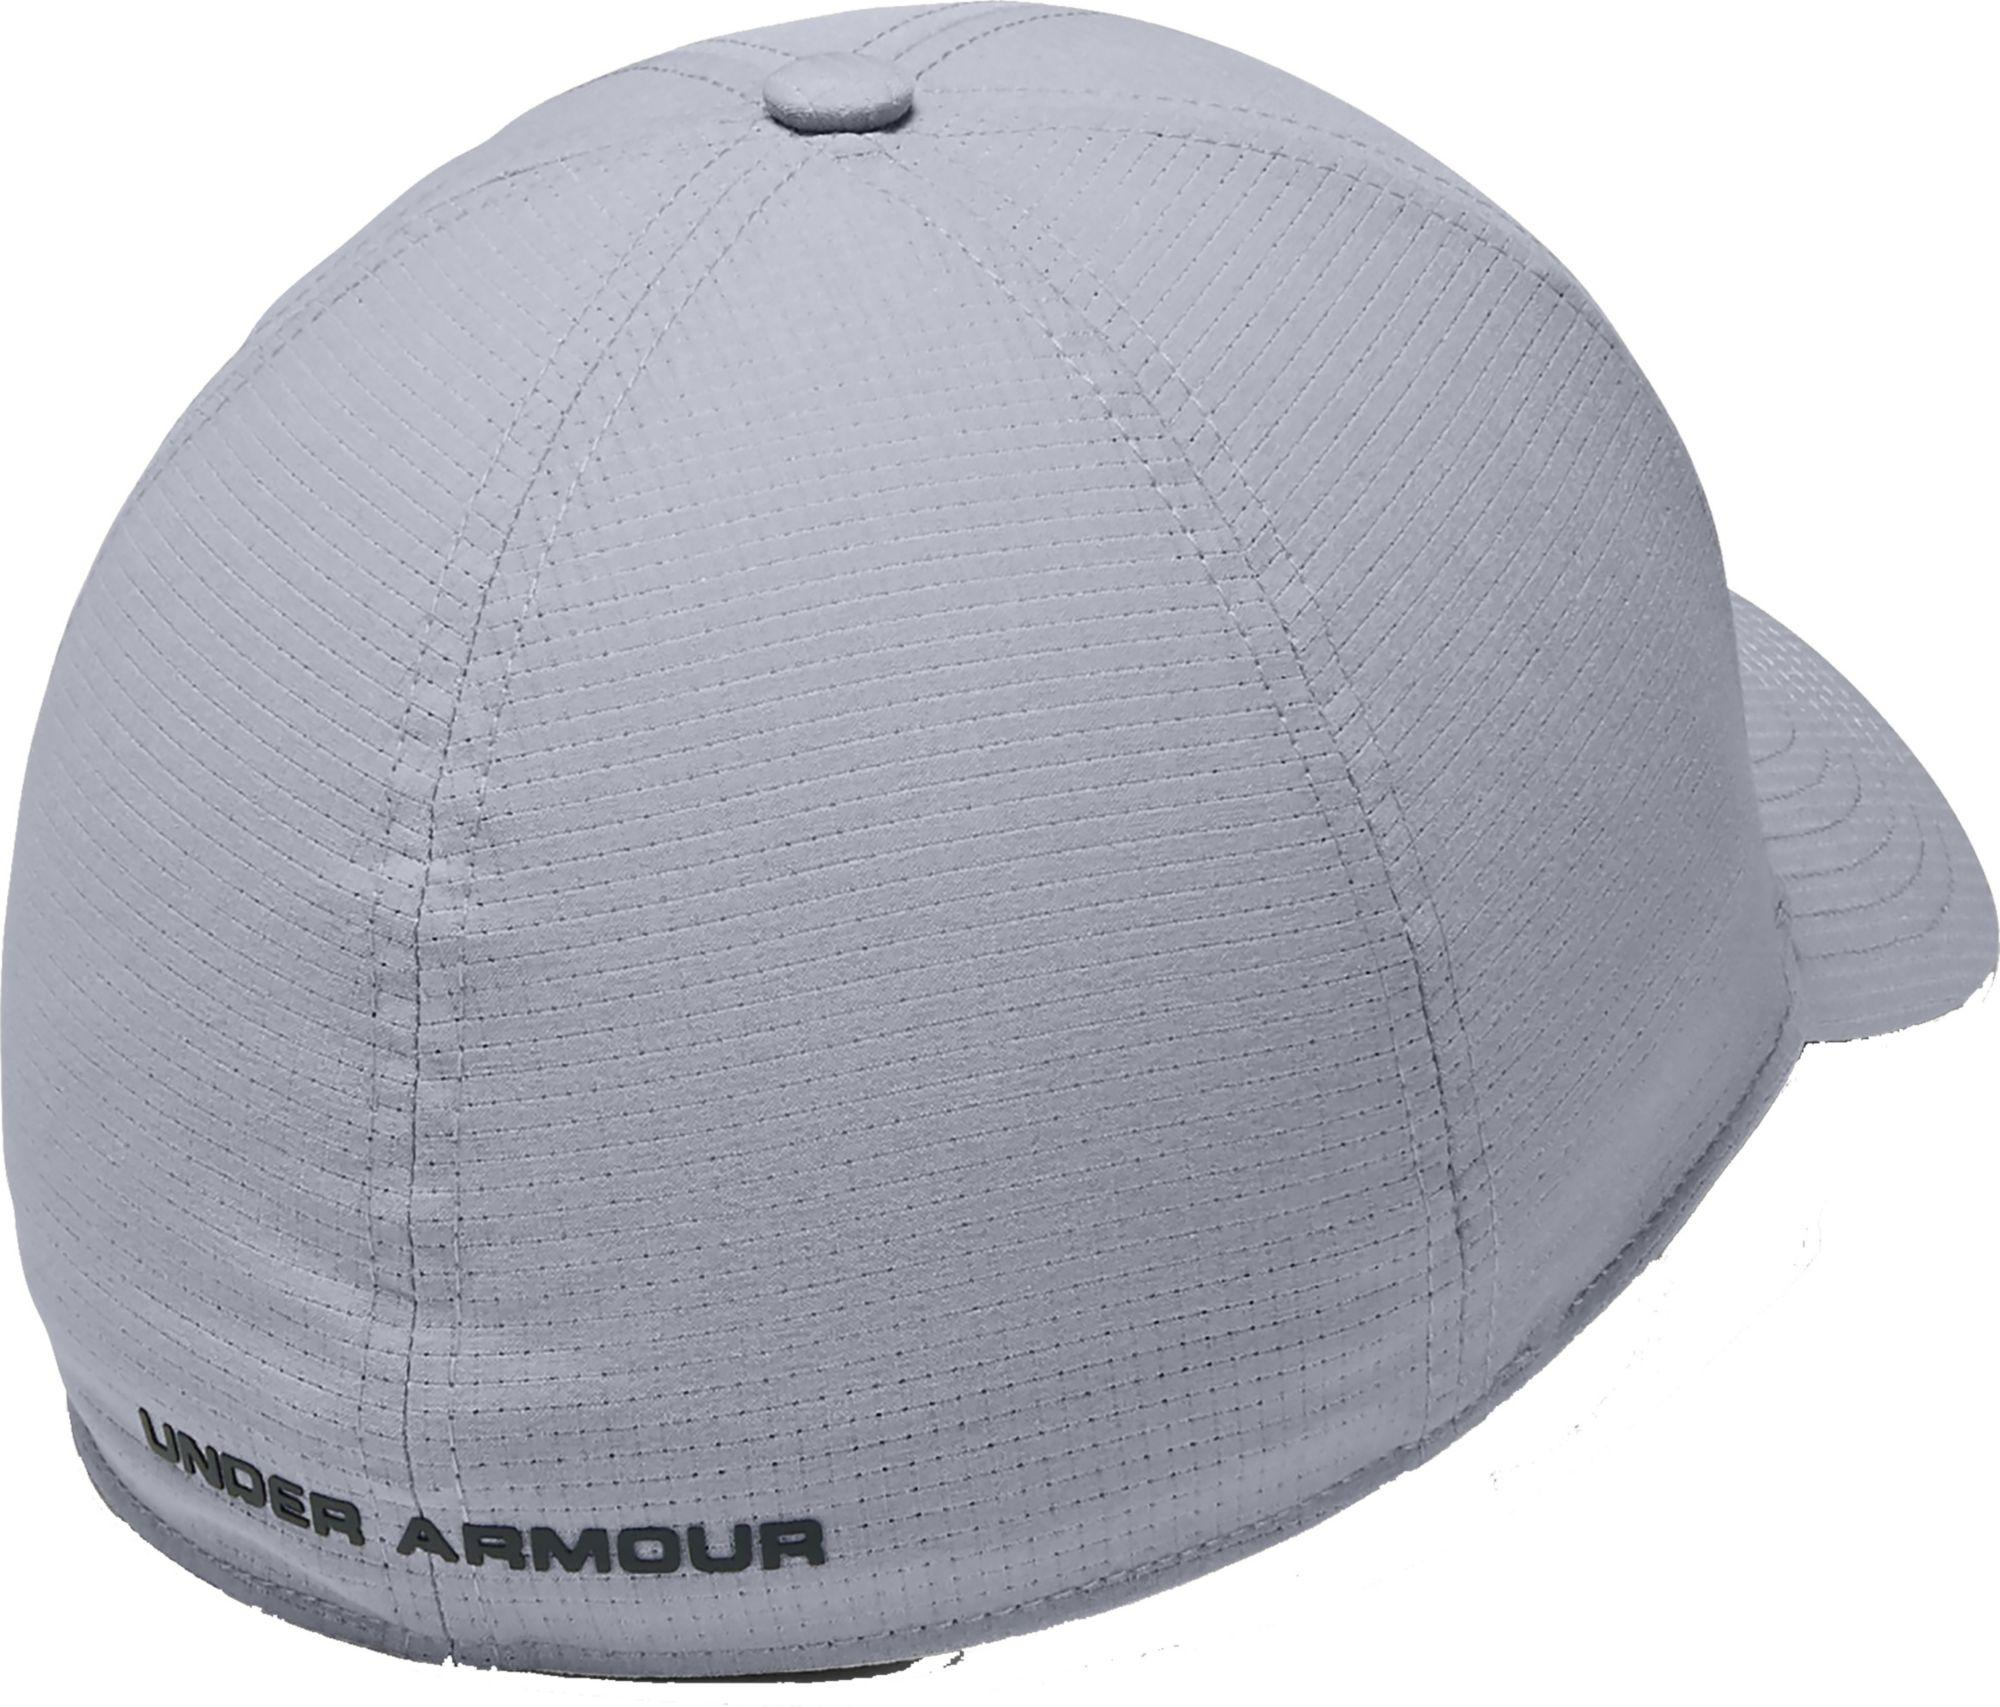 0bc68b0655f Under Armour - Gray Coolswitch Armourvent Fishing Hat for Men - Lyst. View  fullscreen